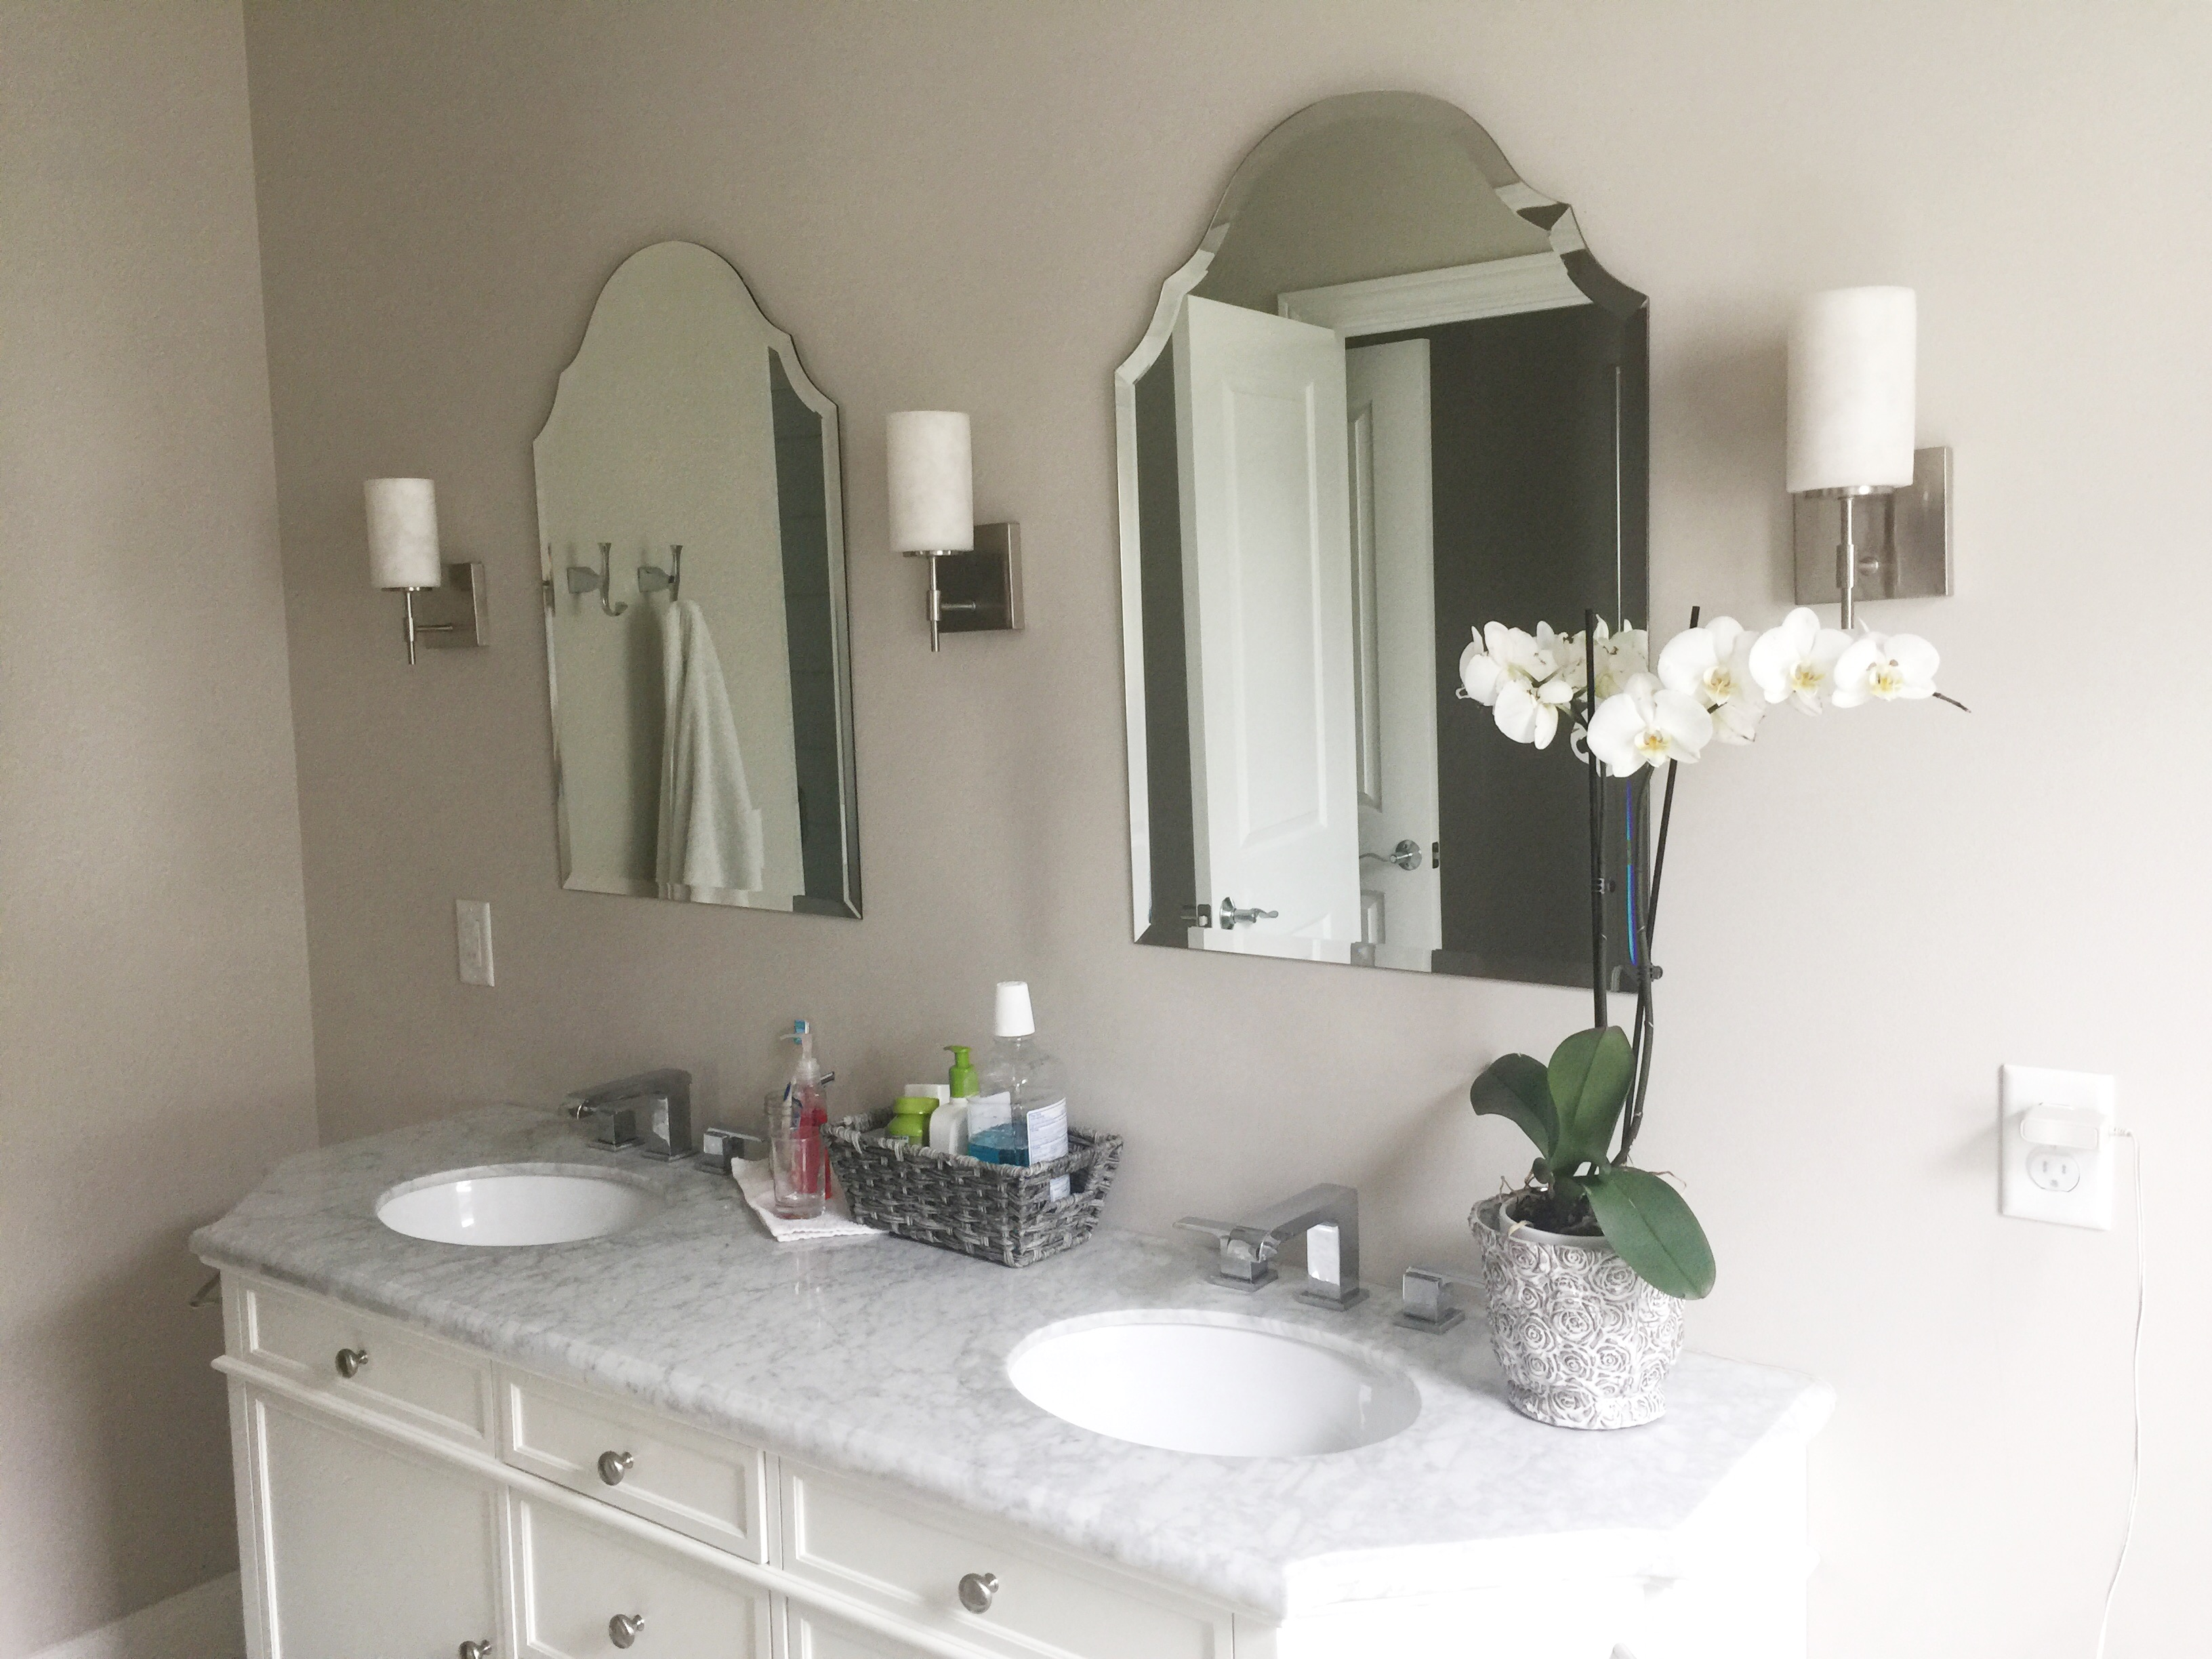 Deciding On A Master Bathroom Vanity Gathering Of Lines